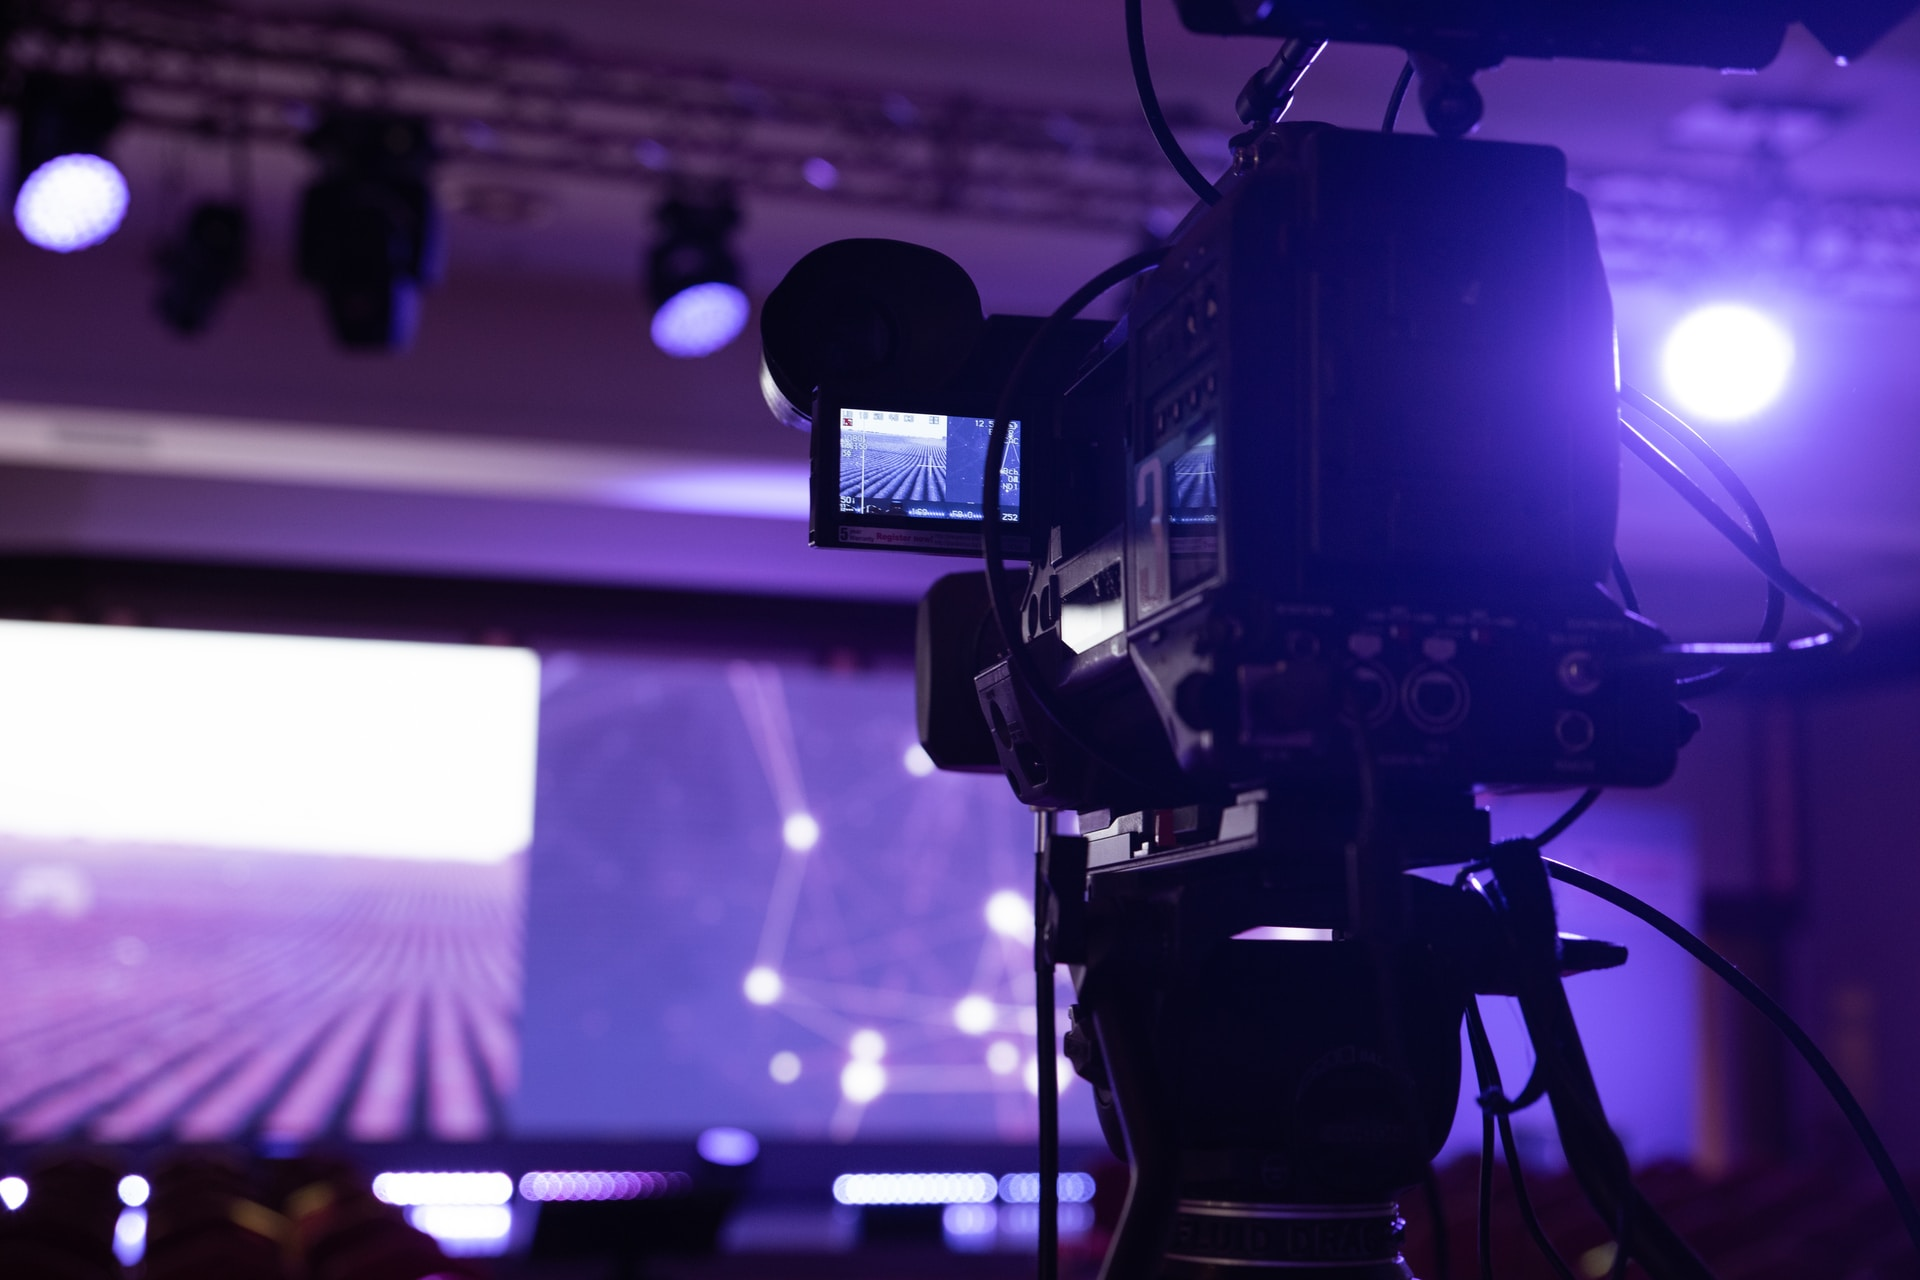 black video camera with tripod capturing stage